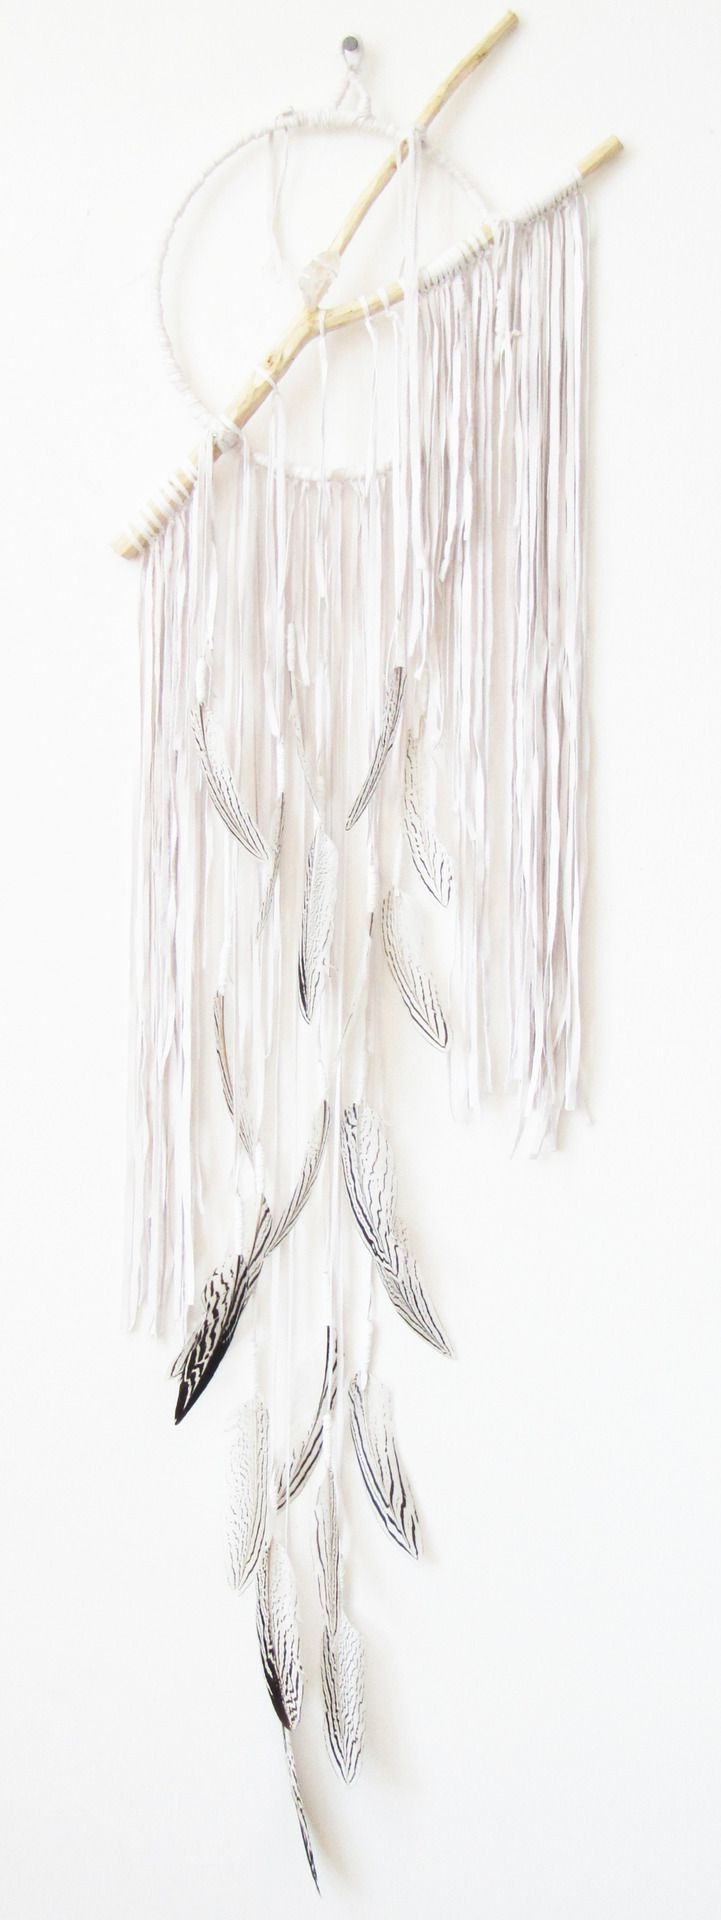 Where To Buy Dream Catchers In Nyc 40 best dream catchers images on Pinterest Dream catchers Dream 3